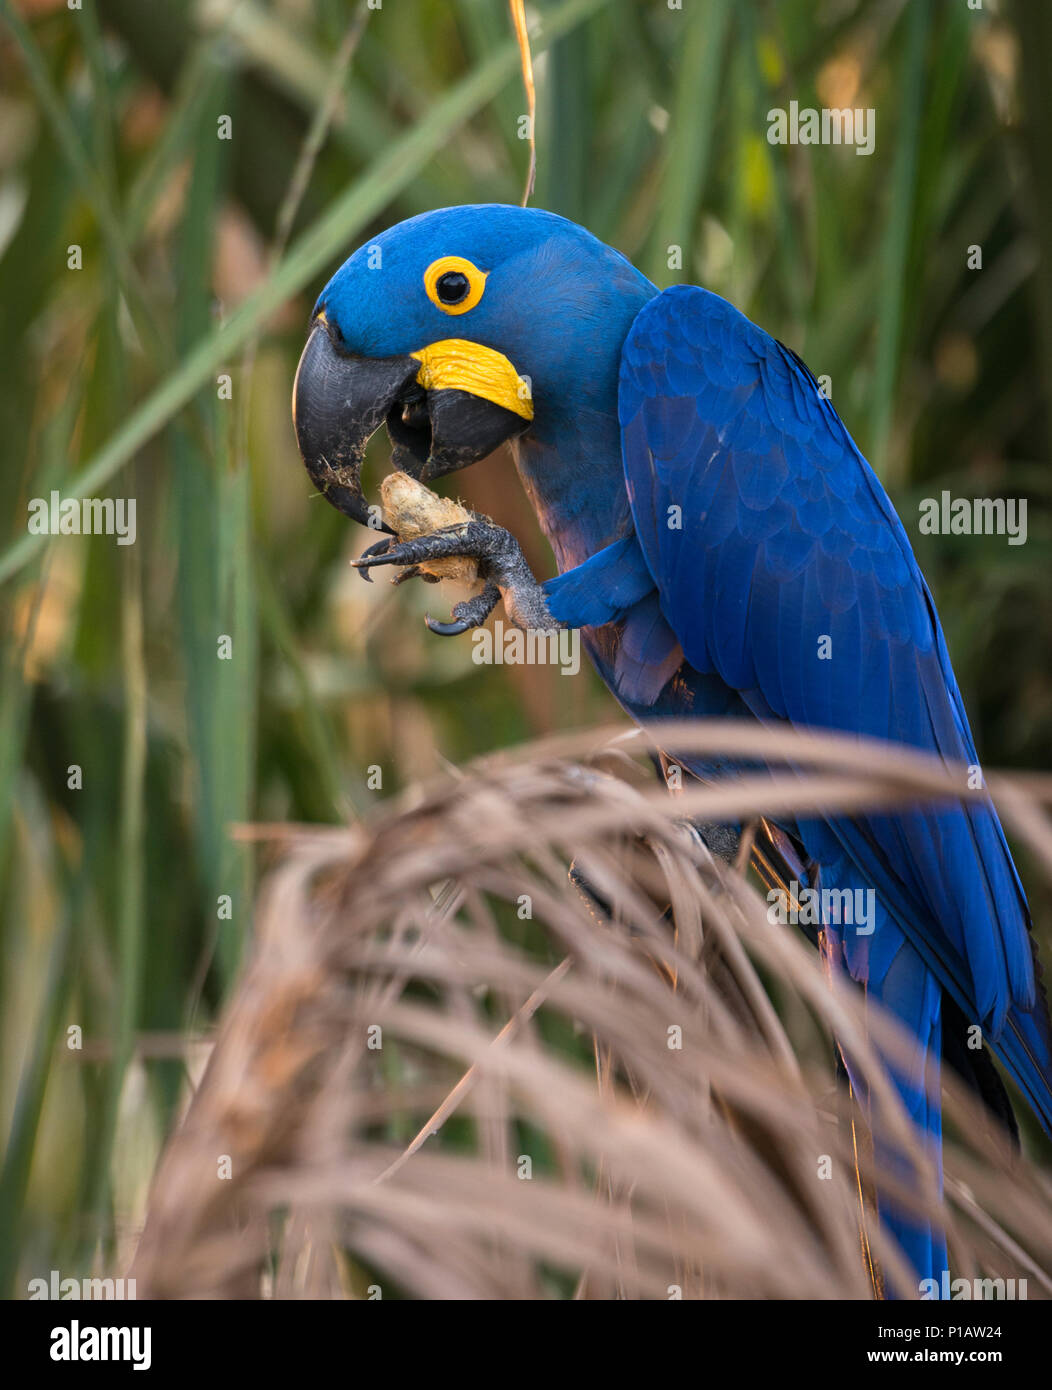 A Hyacinth Macaw from the Pantanal eating its favorite food, the nuts of the Acuri Palm - Stock Image